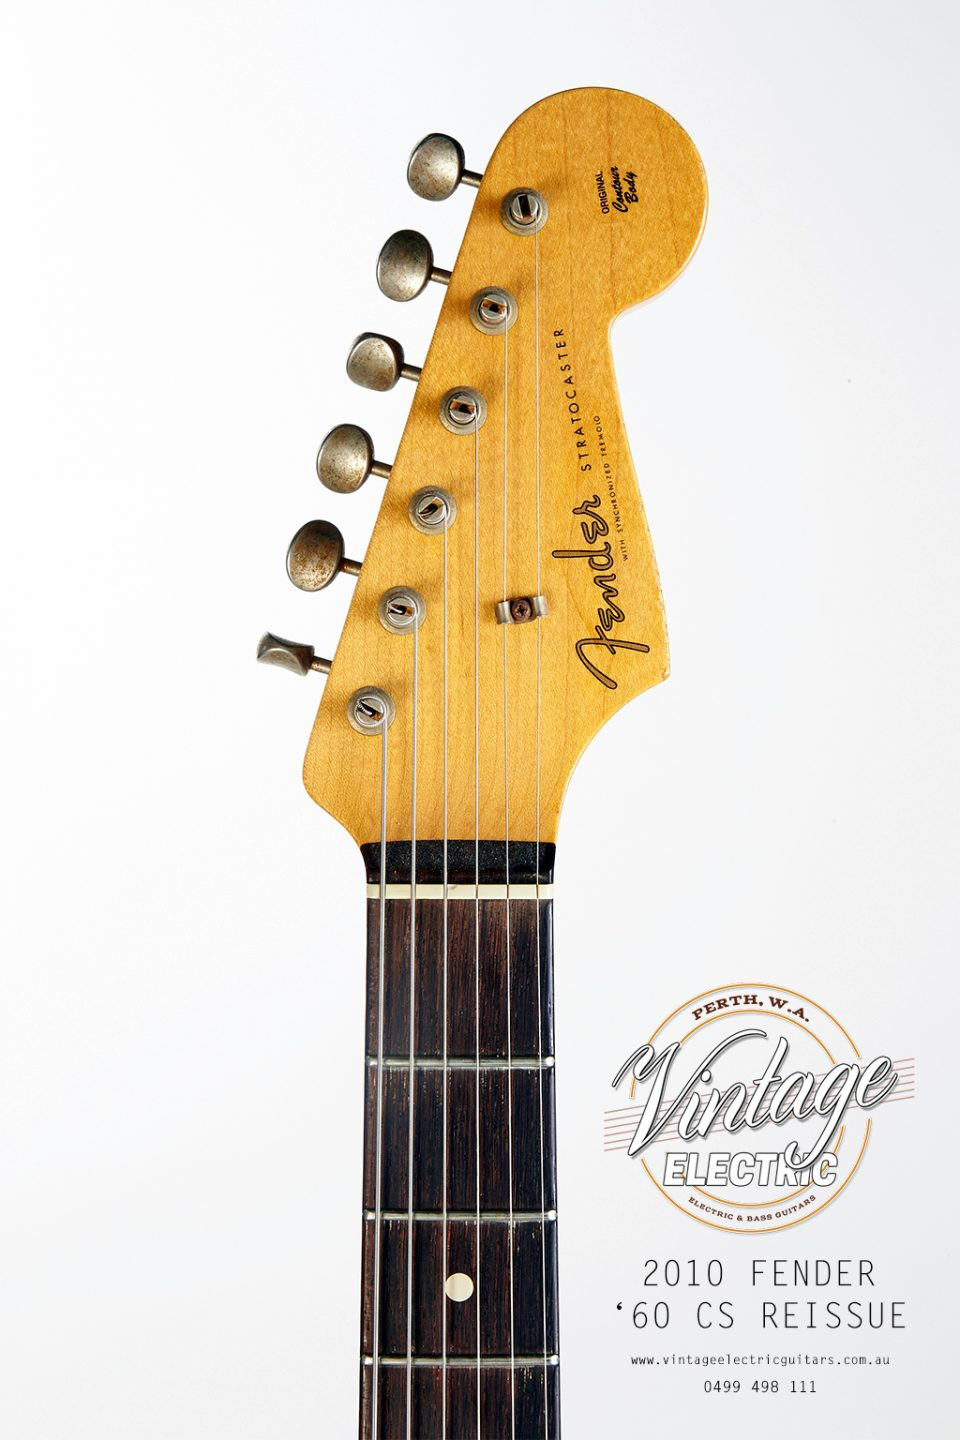 2010 Fender Stratocaster Custom Shop Headstock